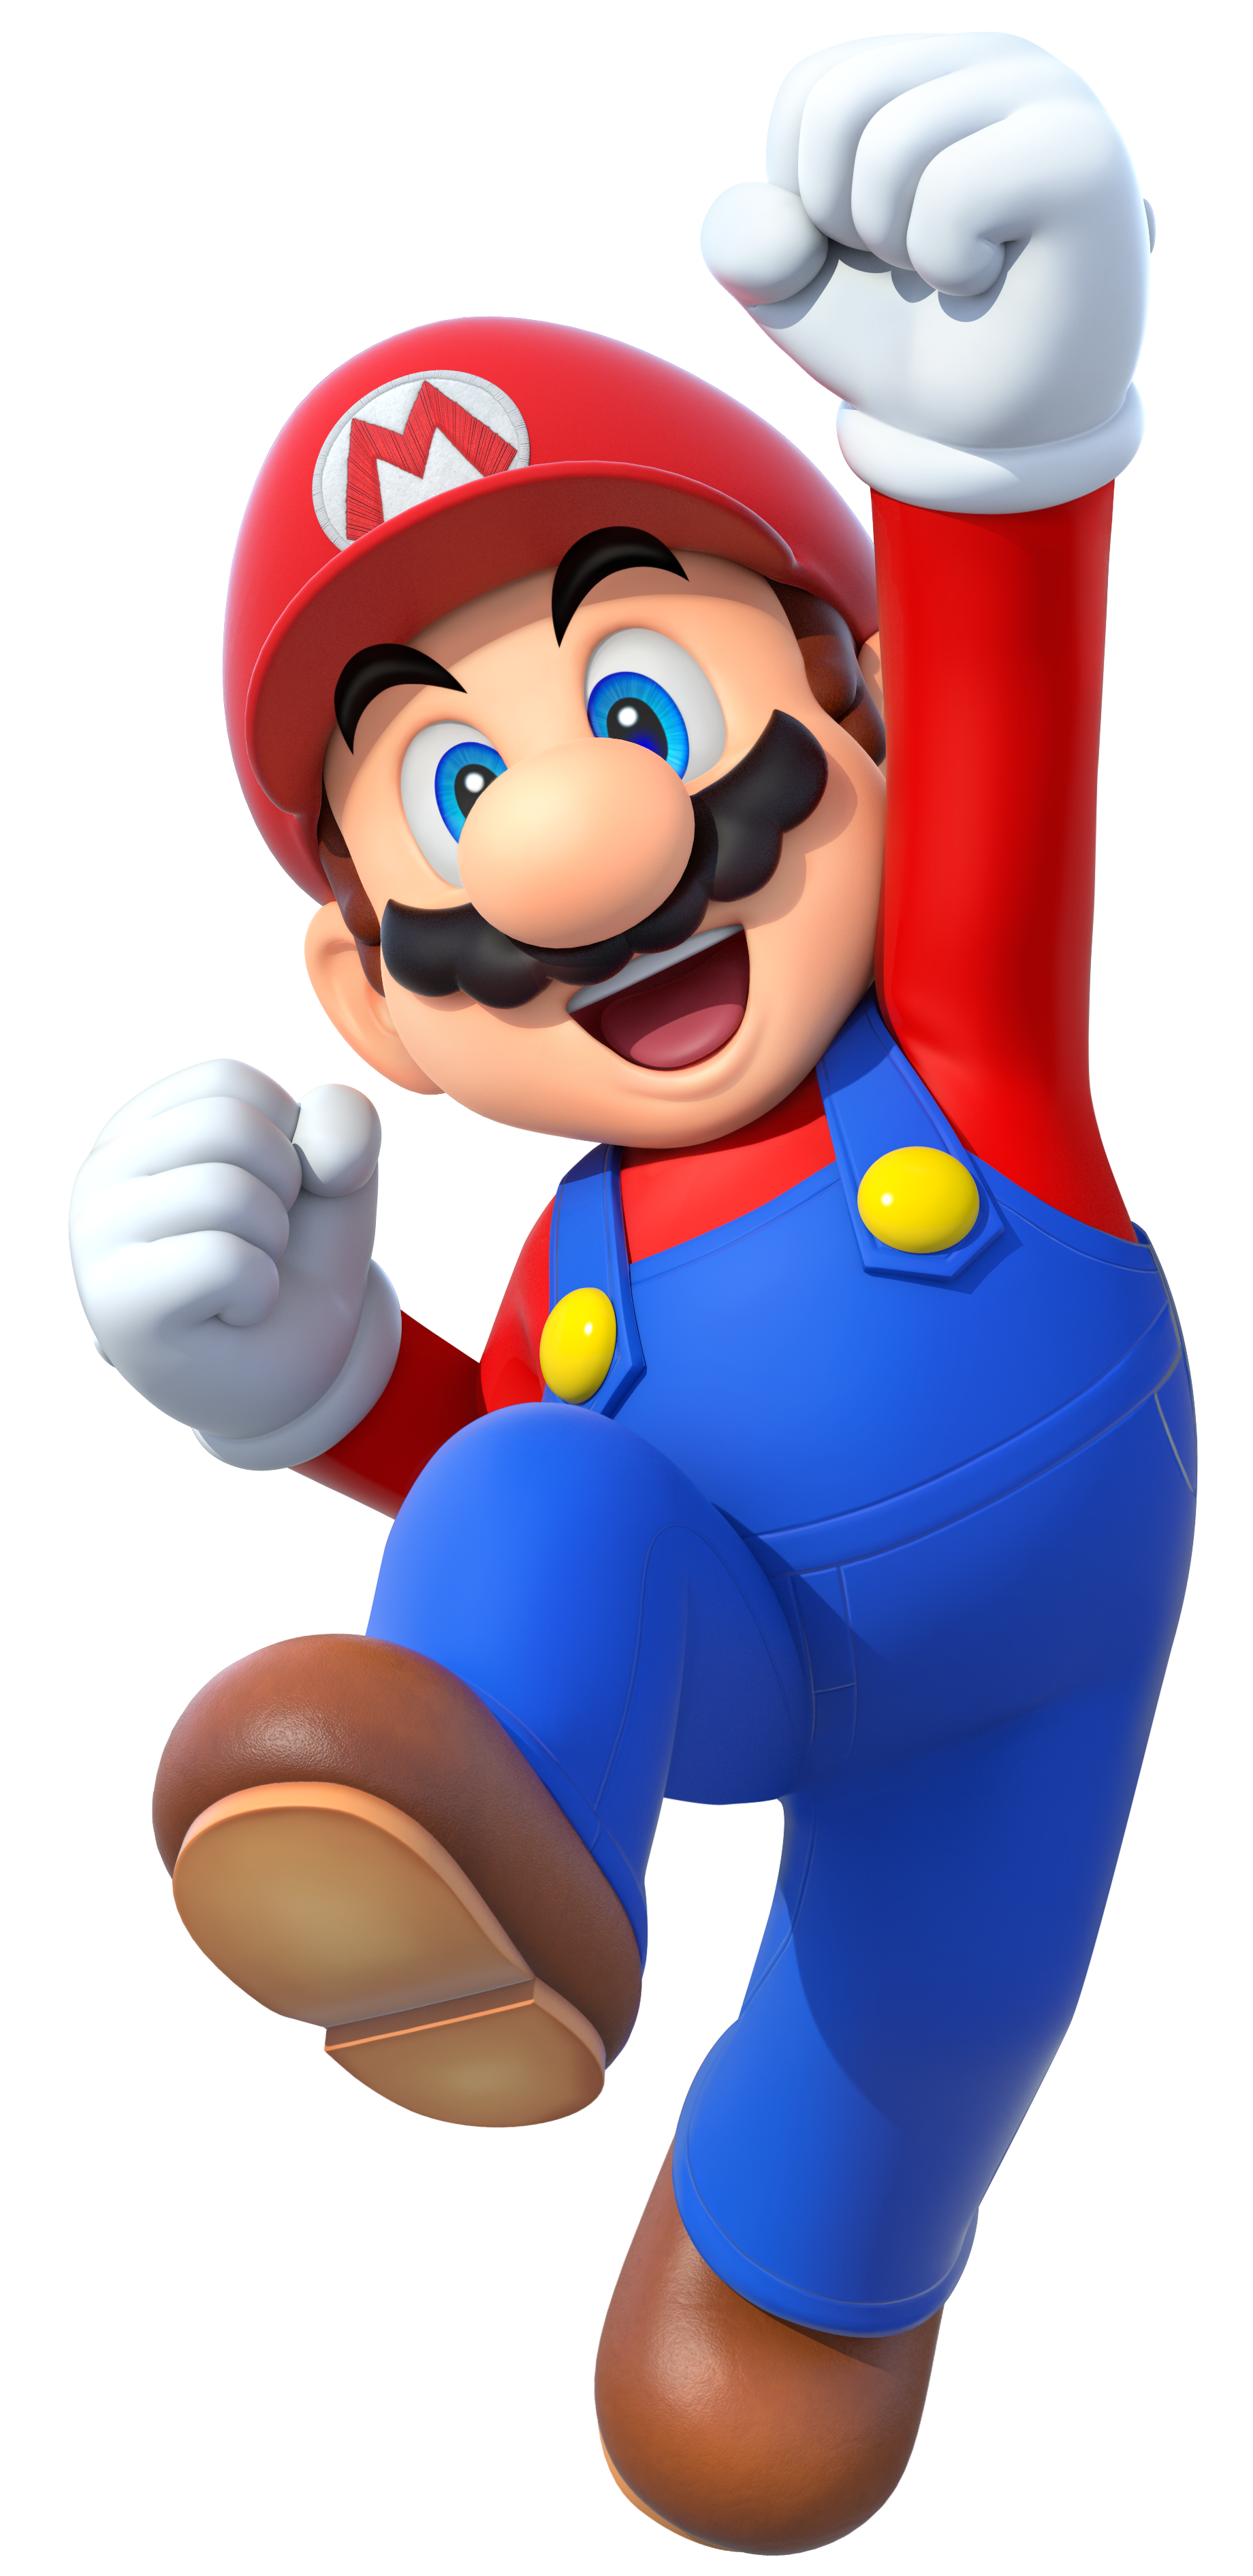 Mario PNG Images Free Download Super